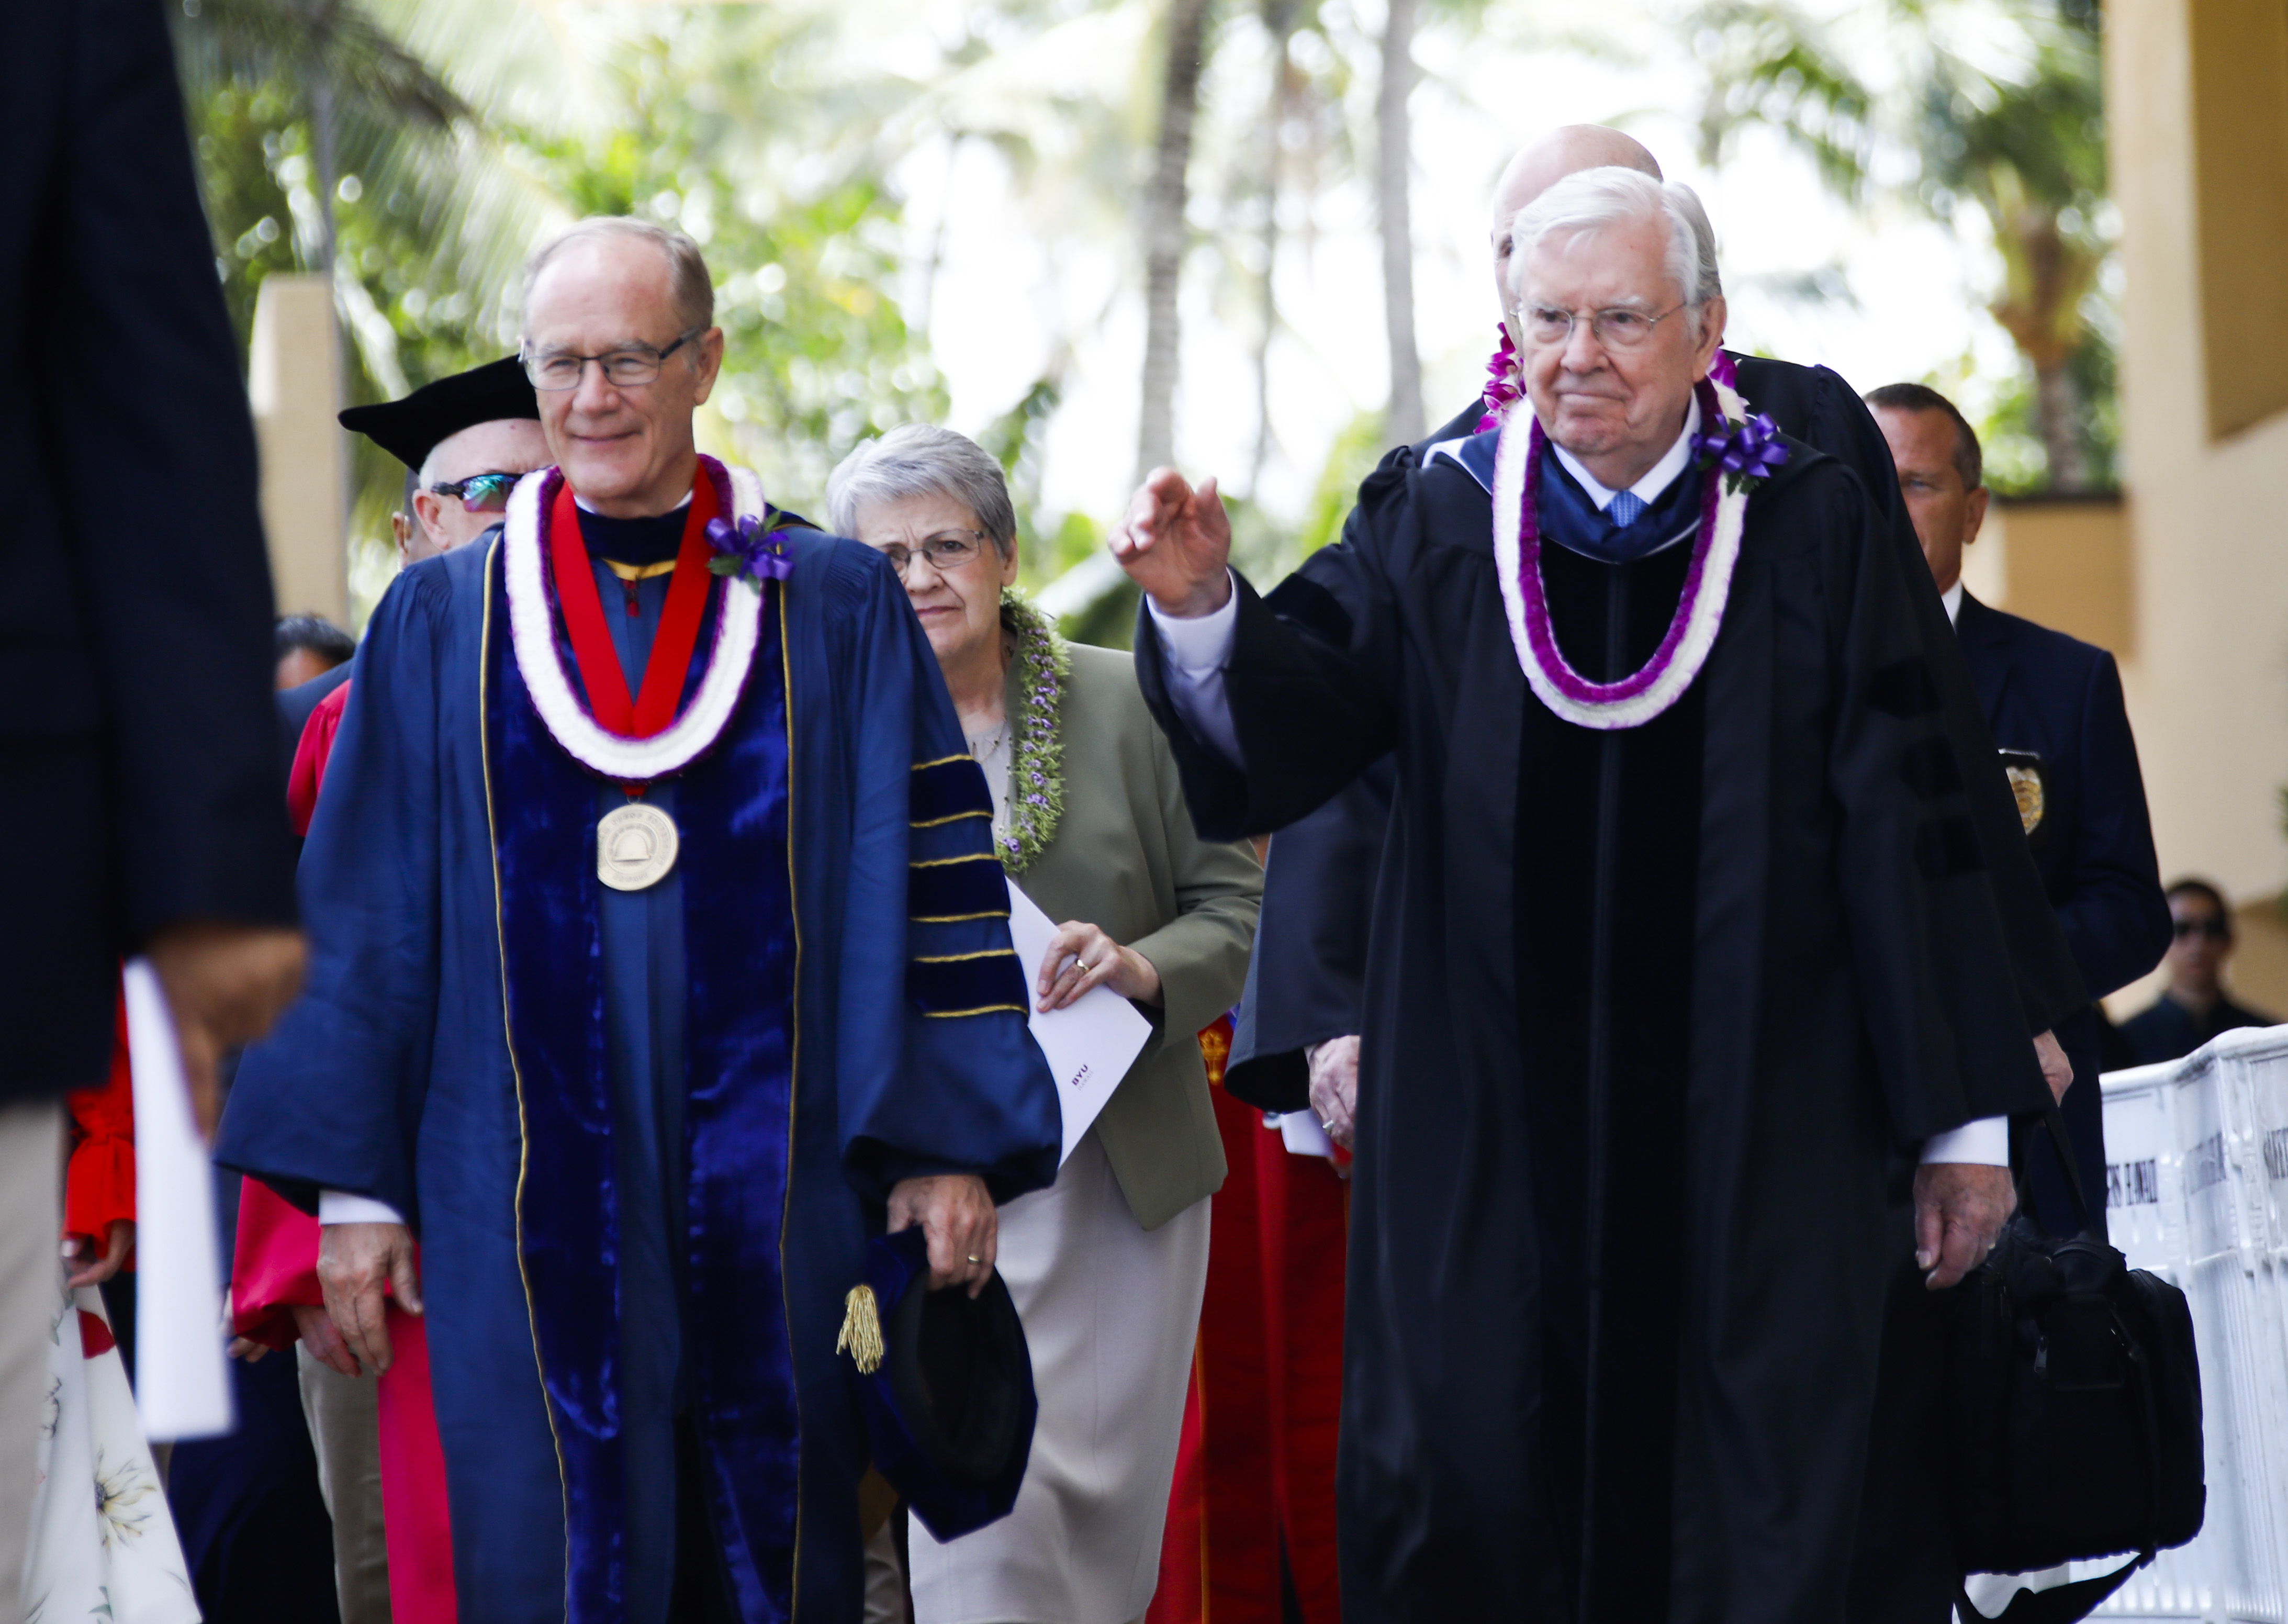 President M. Russell Ballard, right, walks with President John S. Tanner prior to the BYU-Hawaii Winter Semester Commencement ceremony on April 20, 2019.